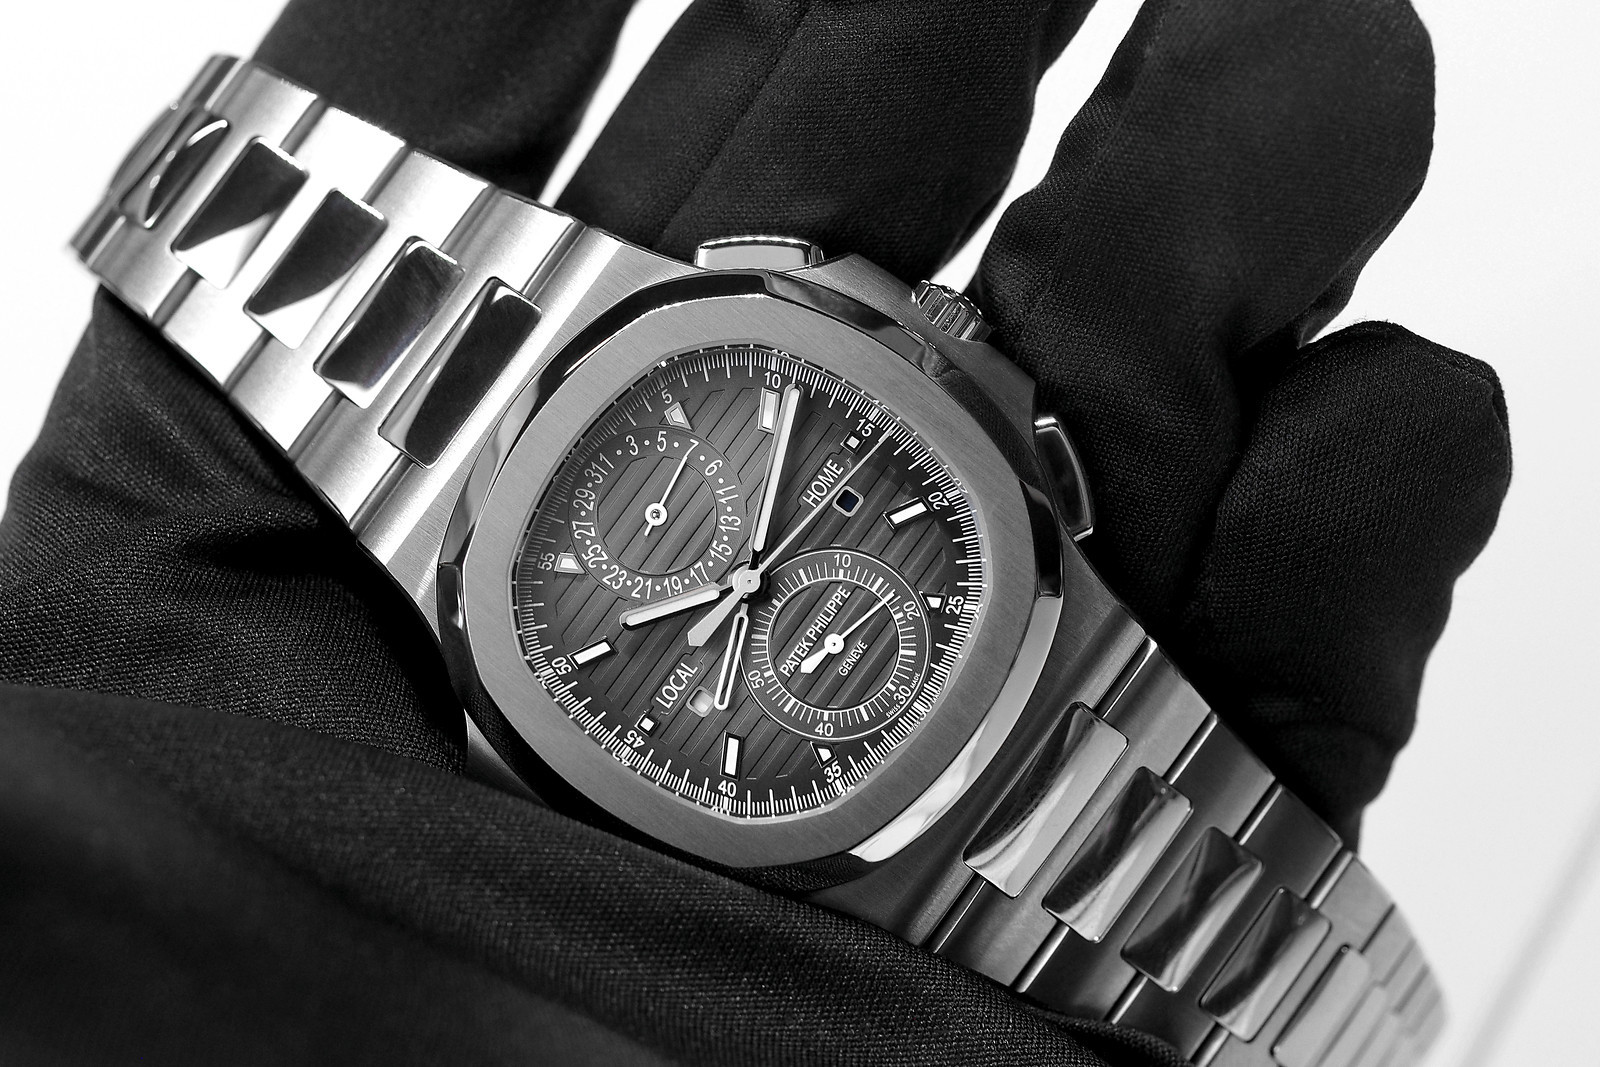 9d8869a61b6ce Hands-On with the Patek Philippe Nautilus Chronograph Travel Time 5990A